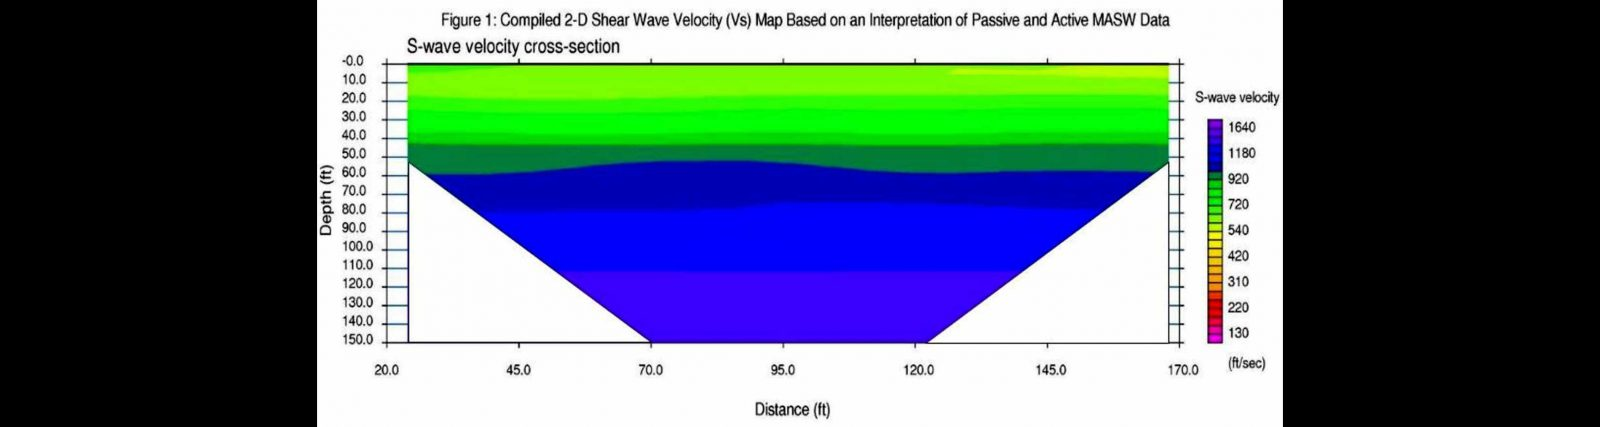 Multichannel Analysis of Surface Waves MASW